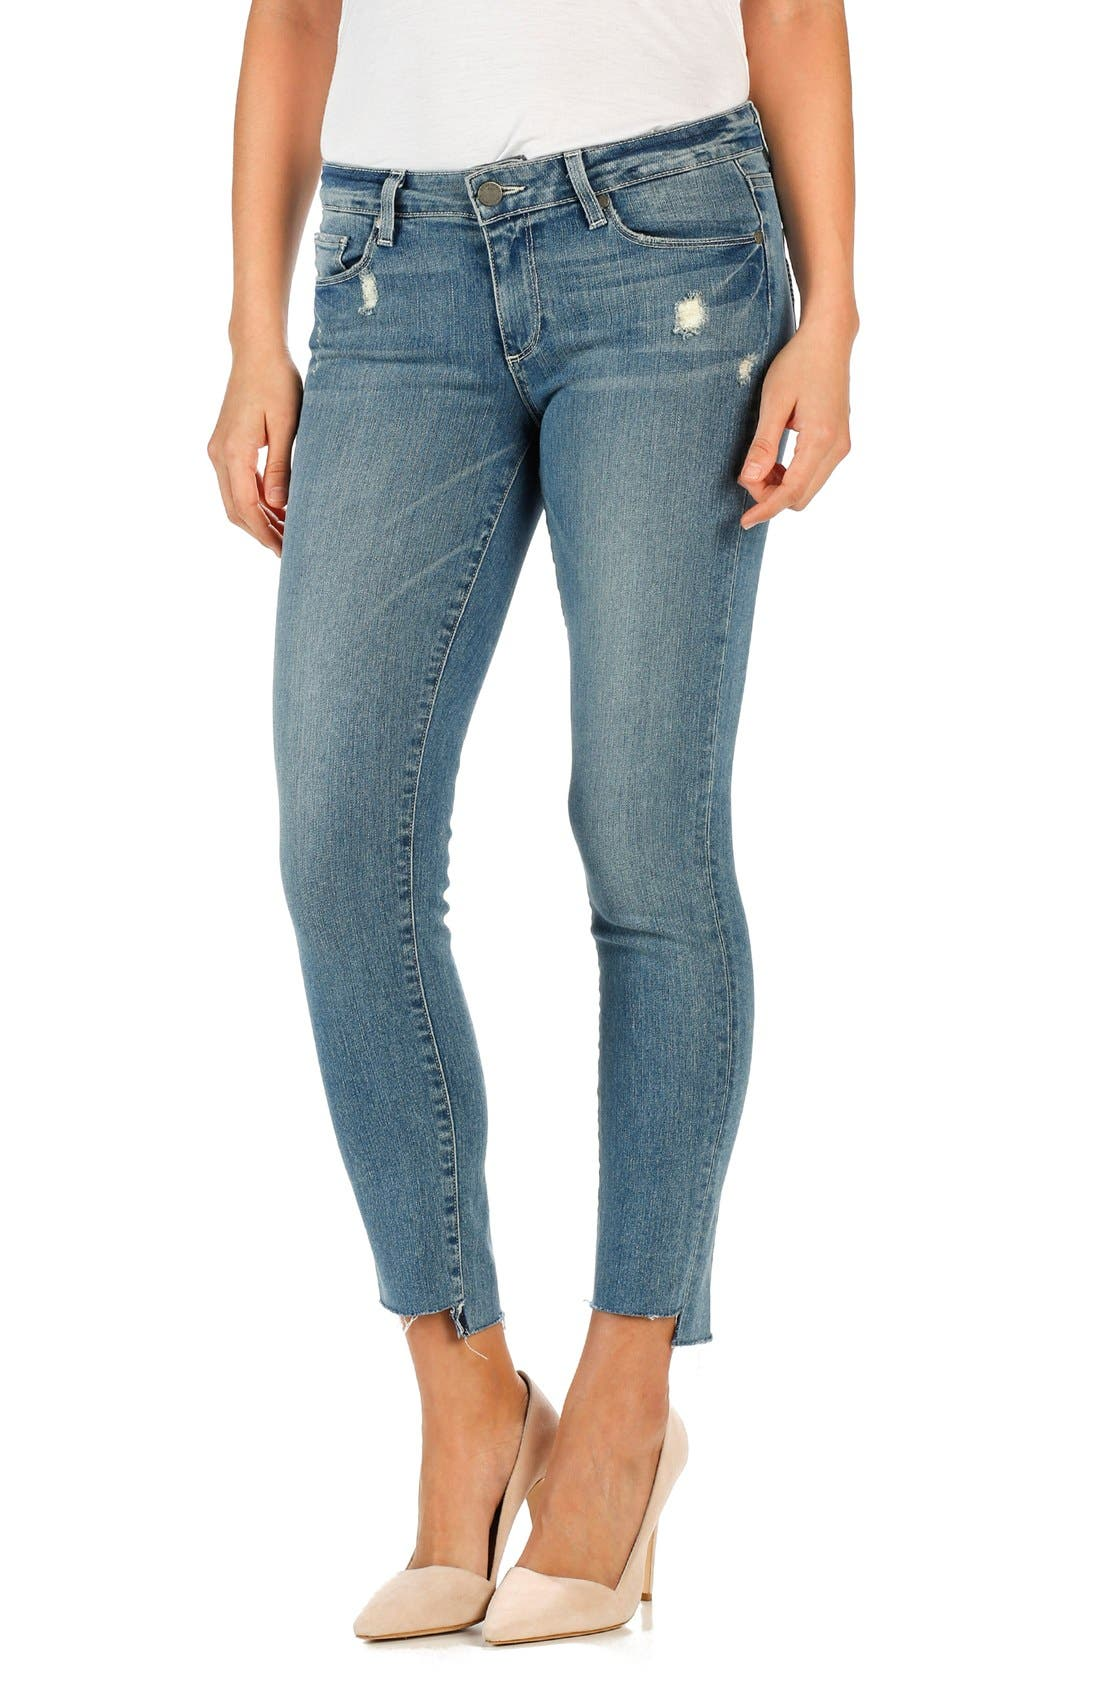 Main Image - PAIGE 'Skyline' Cutoff Ankle Peg Skinny Jeans (Wiley)